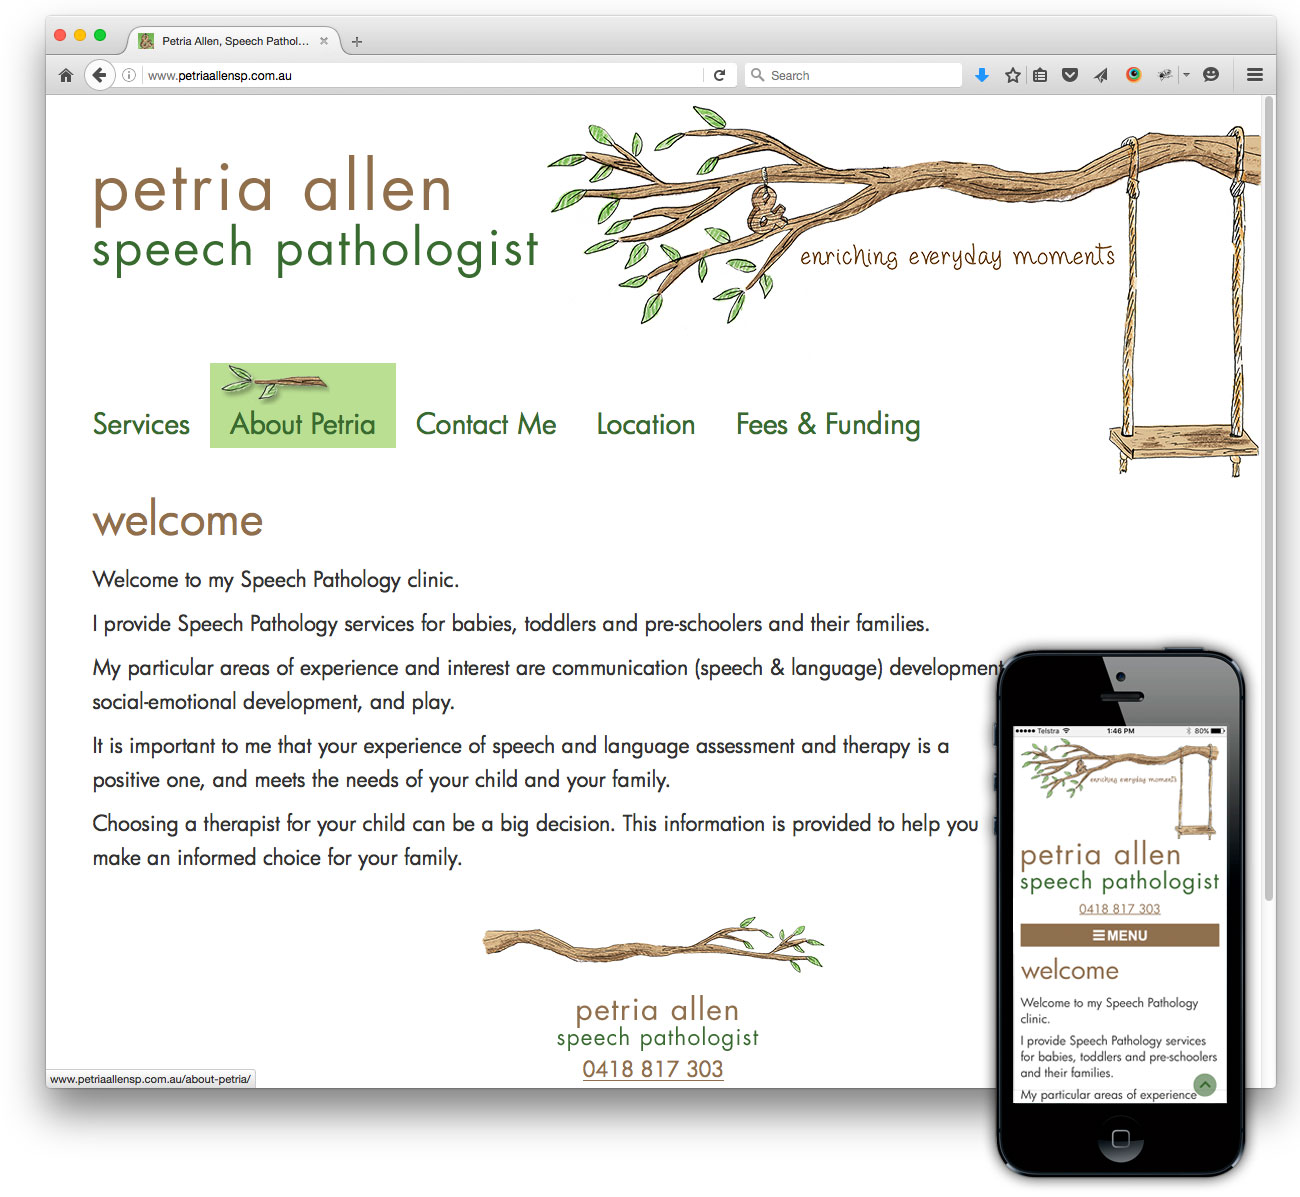 Petria Allen Speech Pathologist website